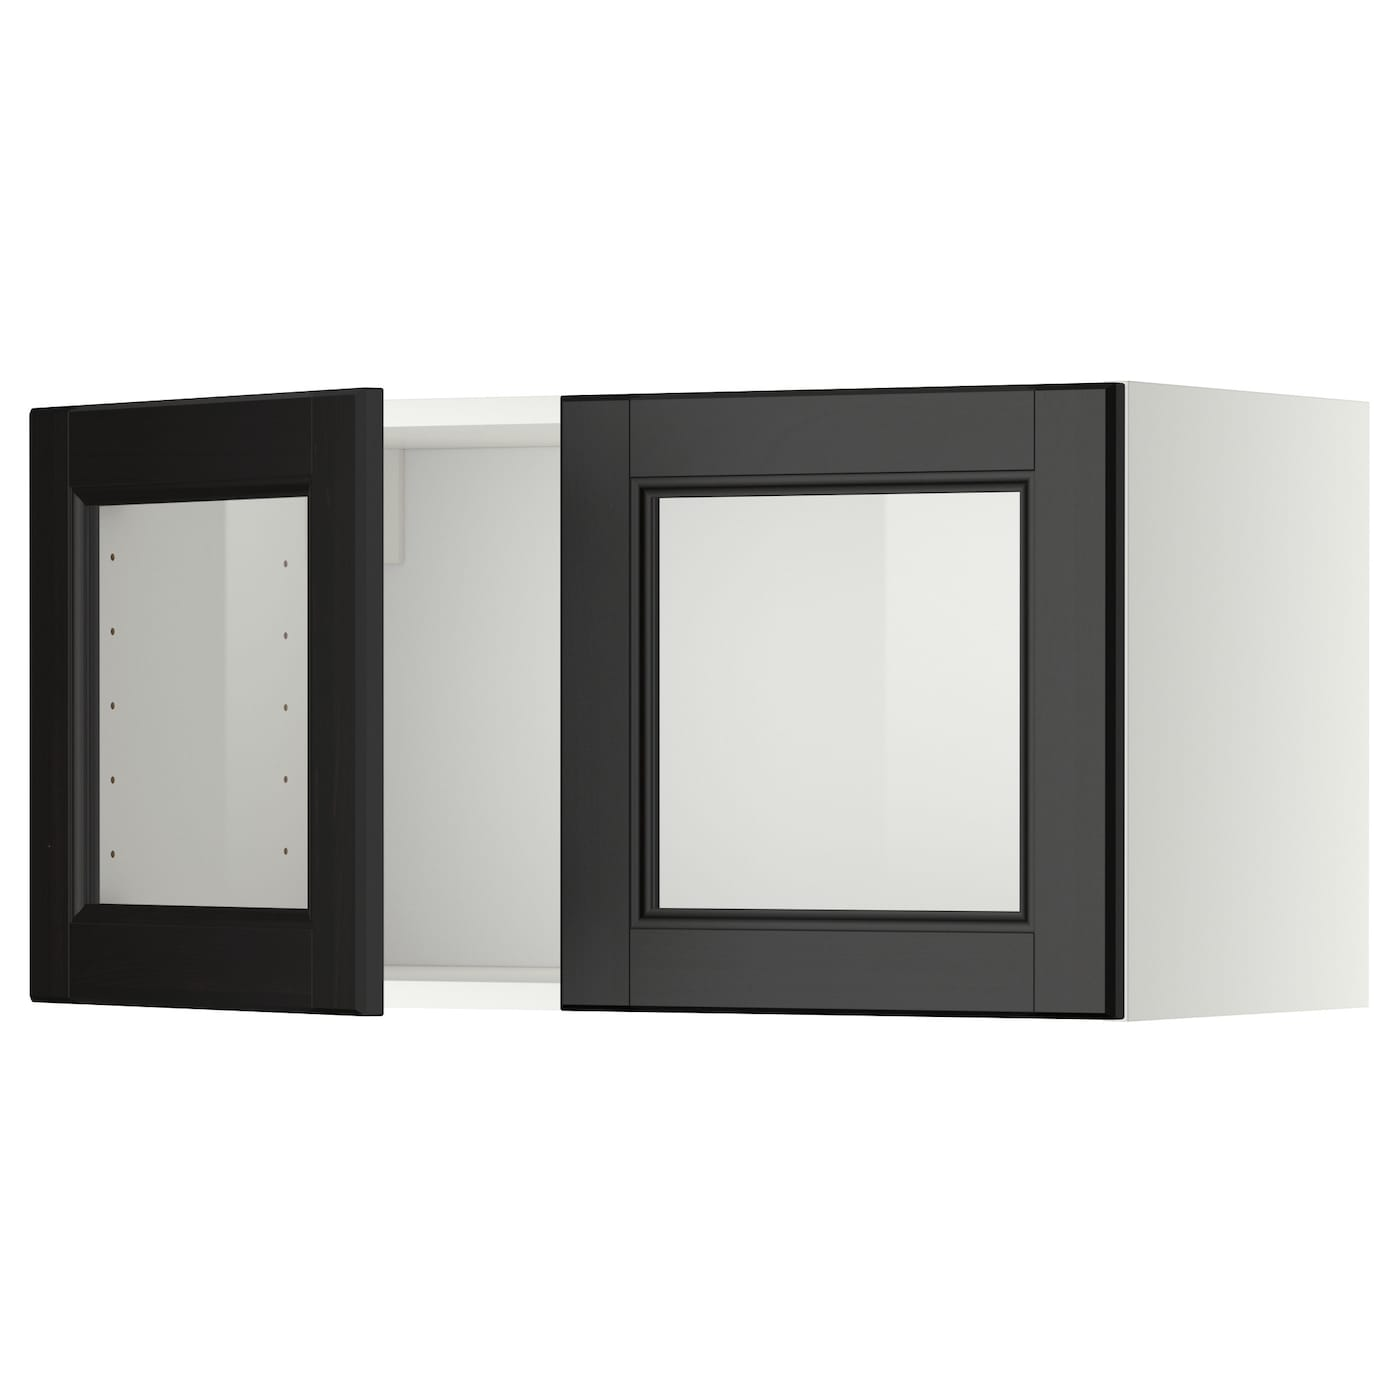 Metod wall cabinet with 2 glass doors white laxarby black for Black kitchen cabinets with glass doors